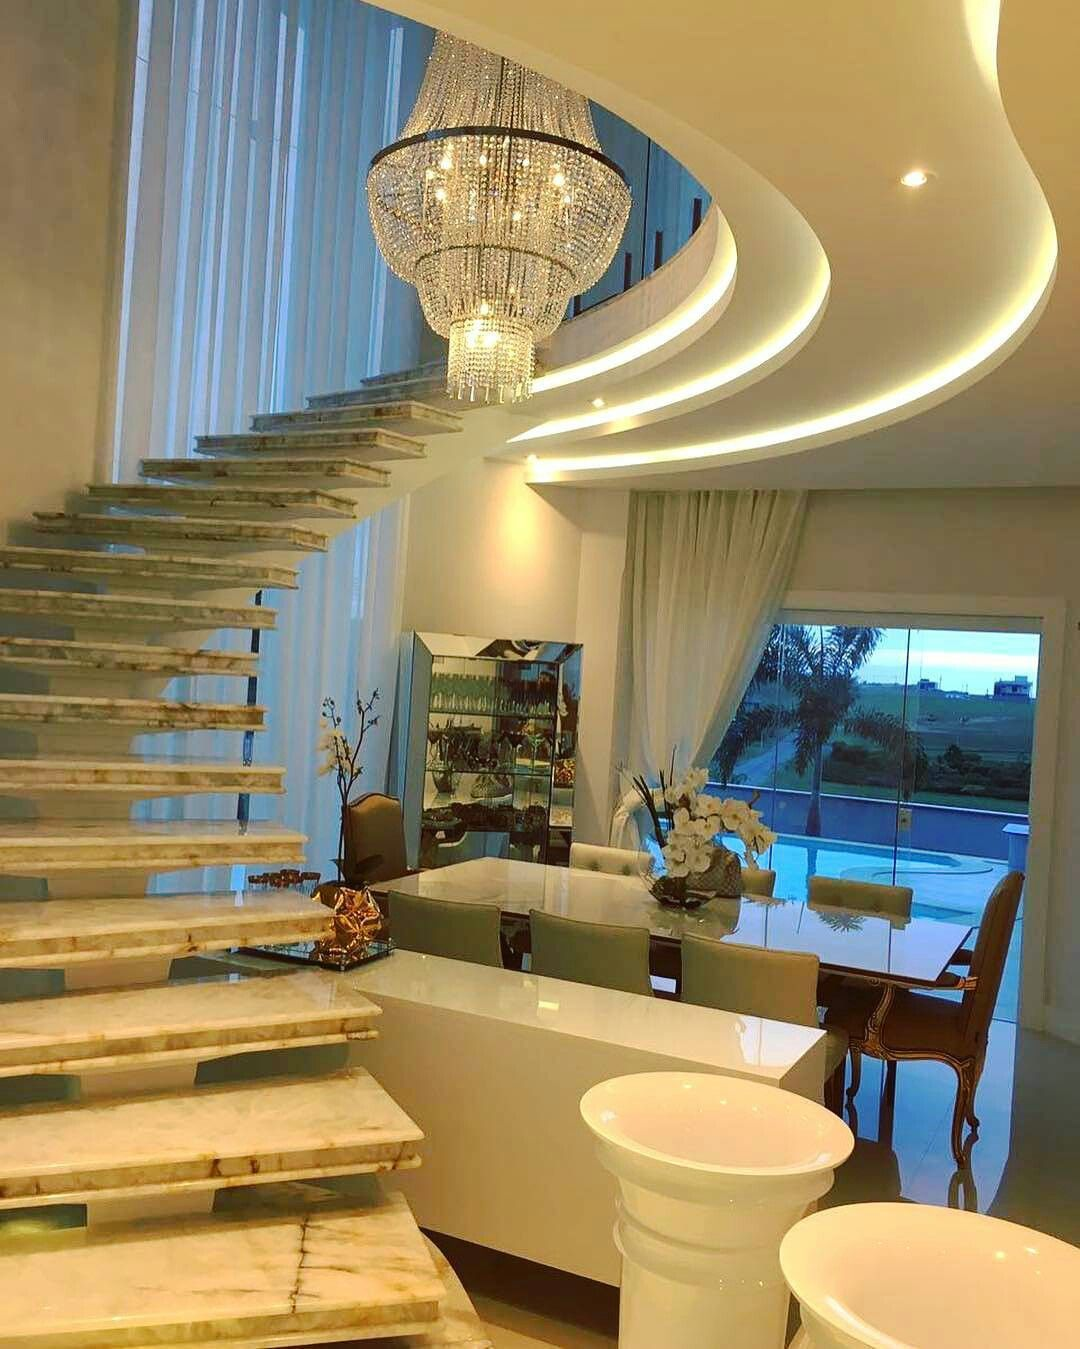 Pin By Arash Armin On Staircase Ceiling Design False Ceiling   False Ceiling On Stairs   Angled   Low Budget   Tv Lounge Ceiling   Residential   Simple